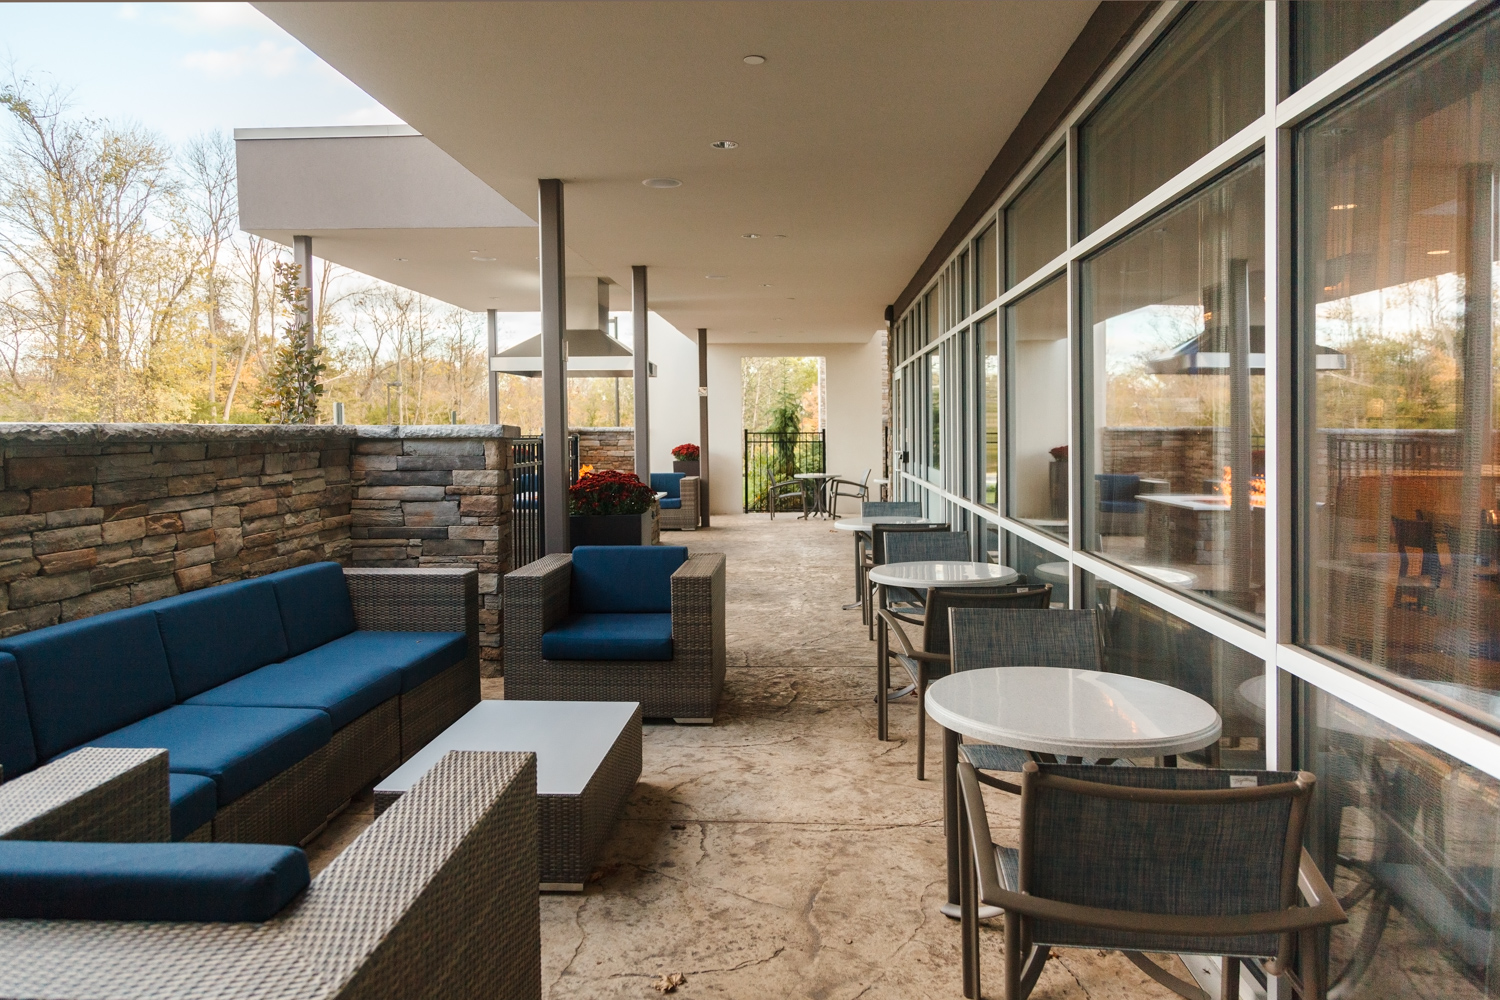 Marriott SpringHill Suites Somerset New Jersey Outdoor Patio with Fire pit